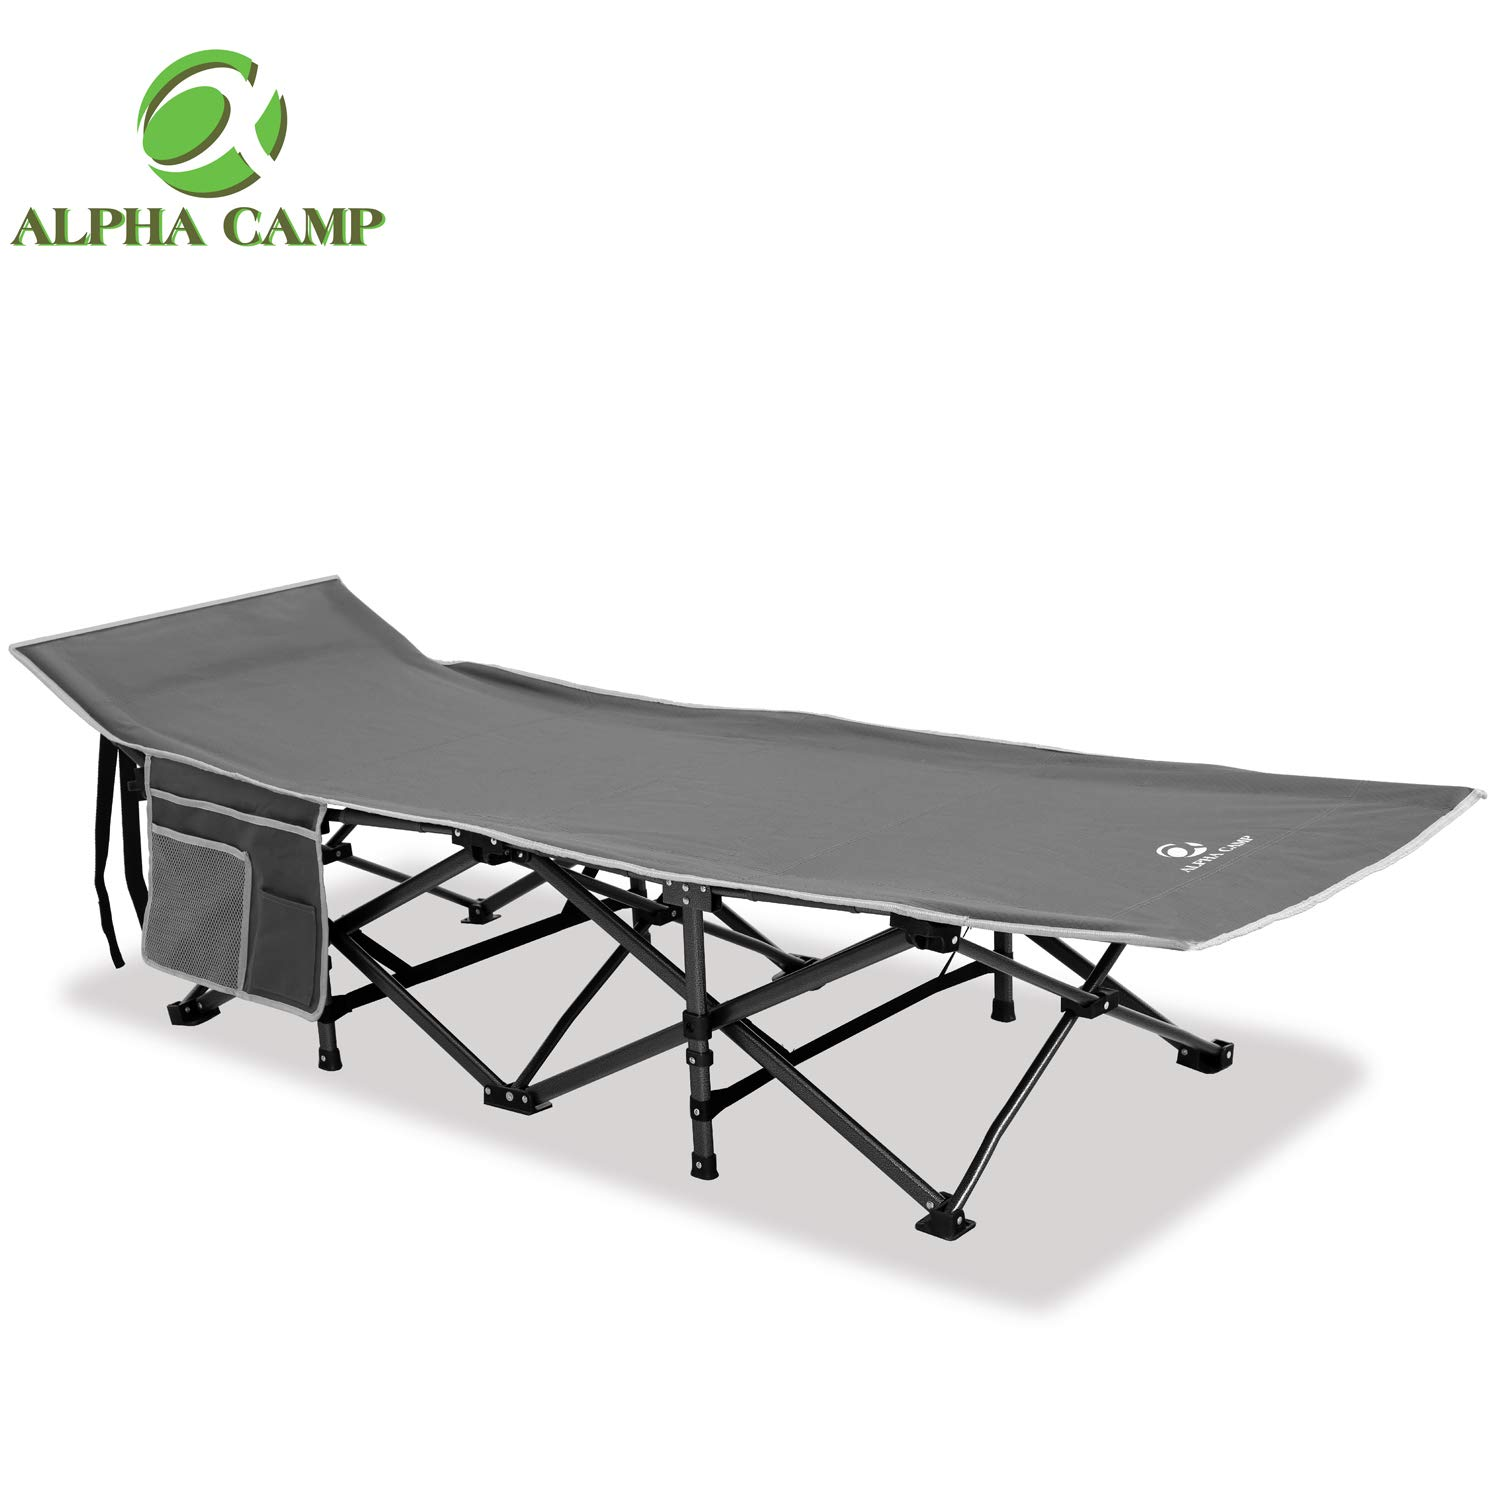 ALPHA CAMP Oversized Camping Cot Supports 600 lbs Sleeping Bed Folding Steel Frame Portable with Carry Bag by ALPHA CAMP